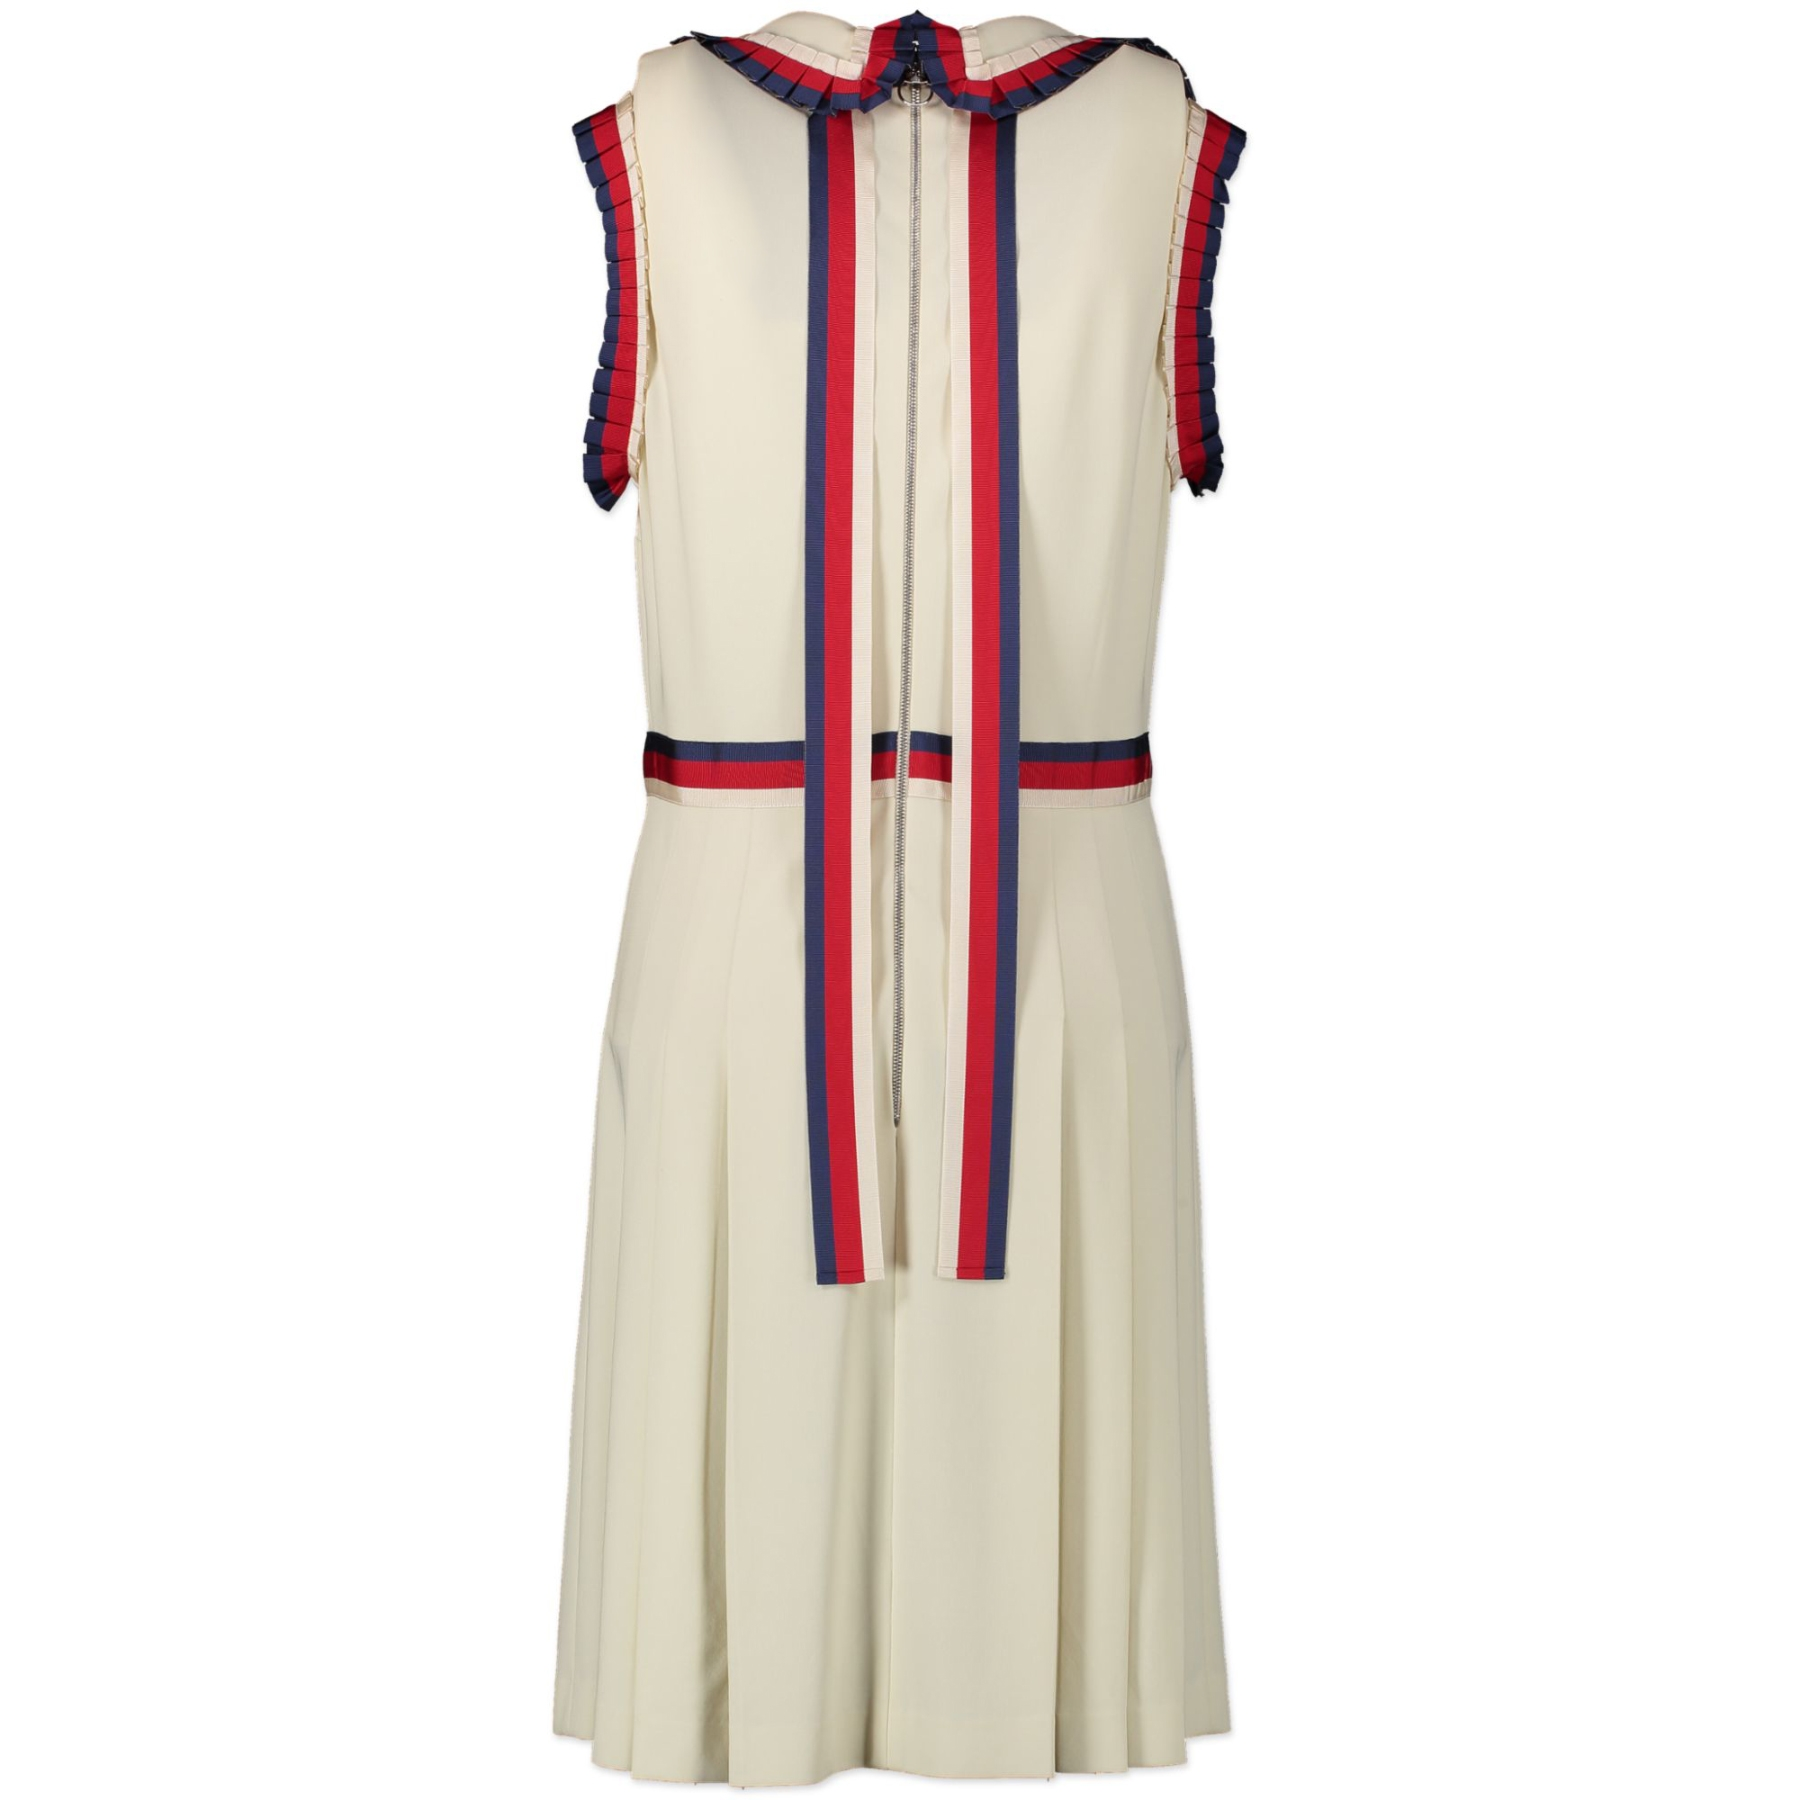 Buy authentic second hand Gucci dresses with right price at LabelLOV. Gucci Cream A-Line Dress - Size M